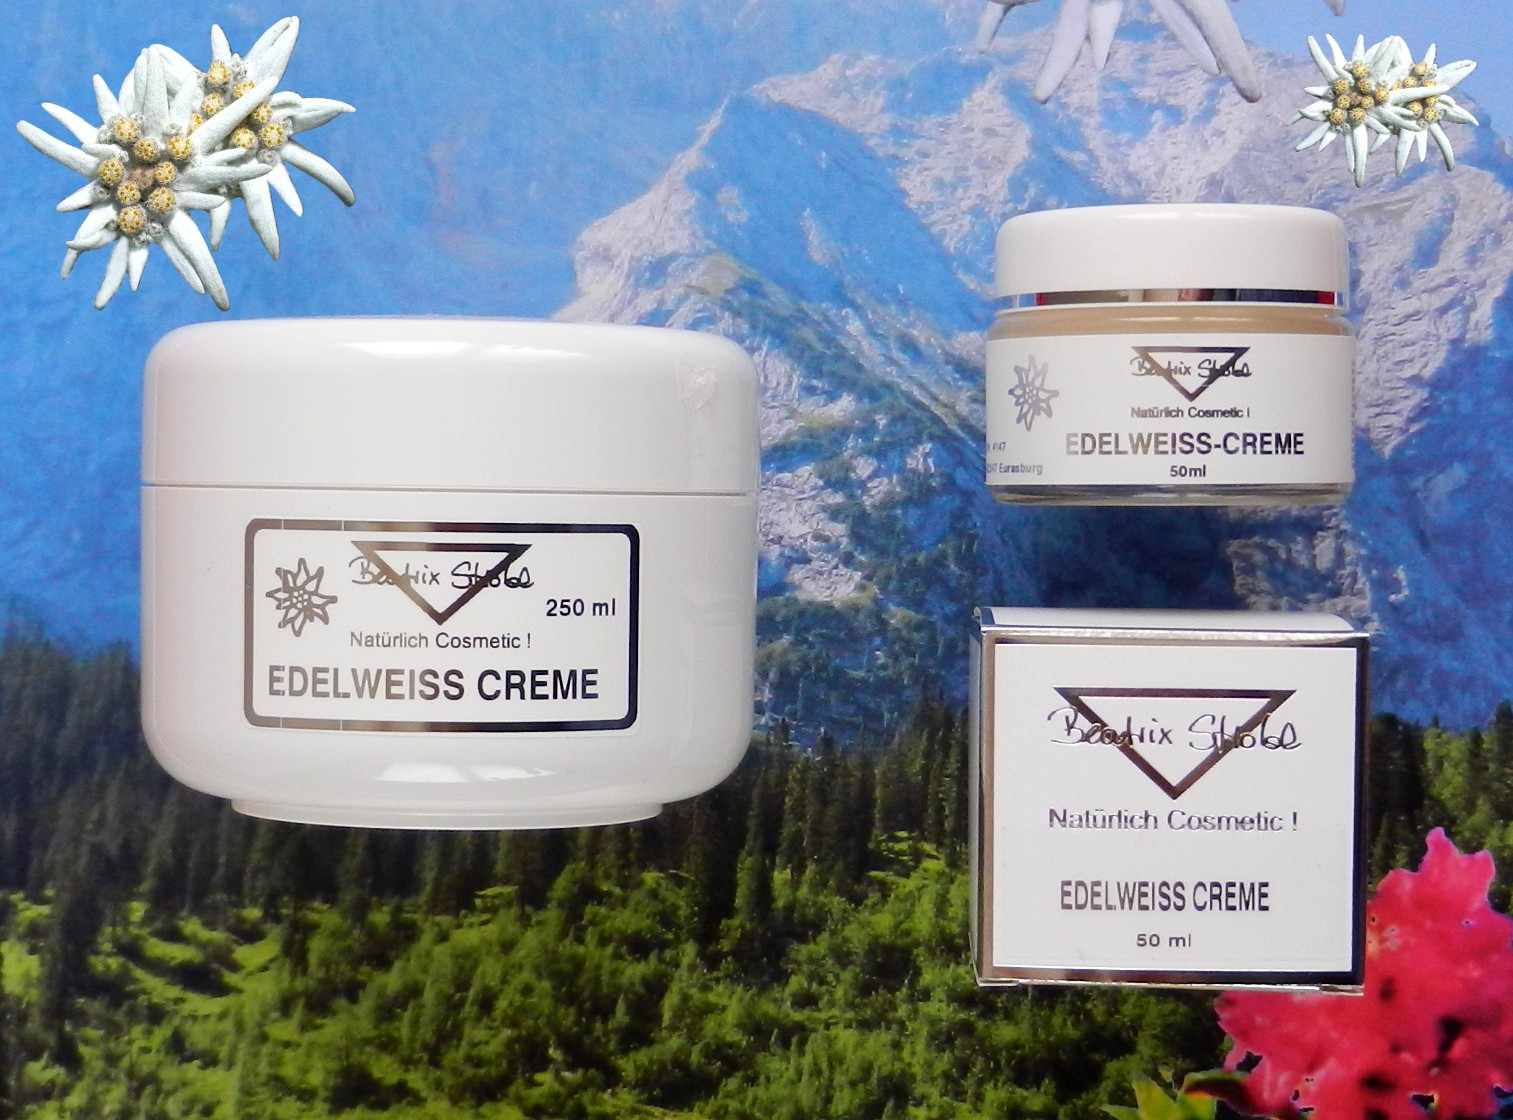 EDELWEISS CREME